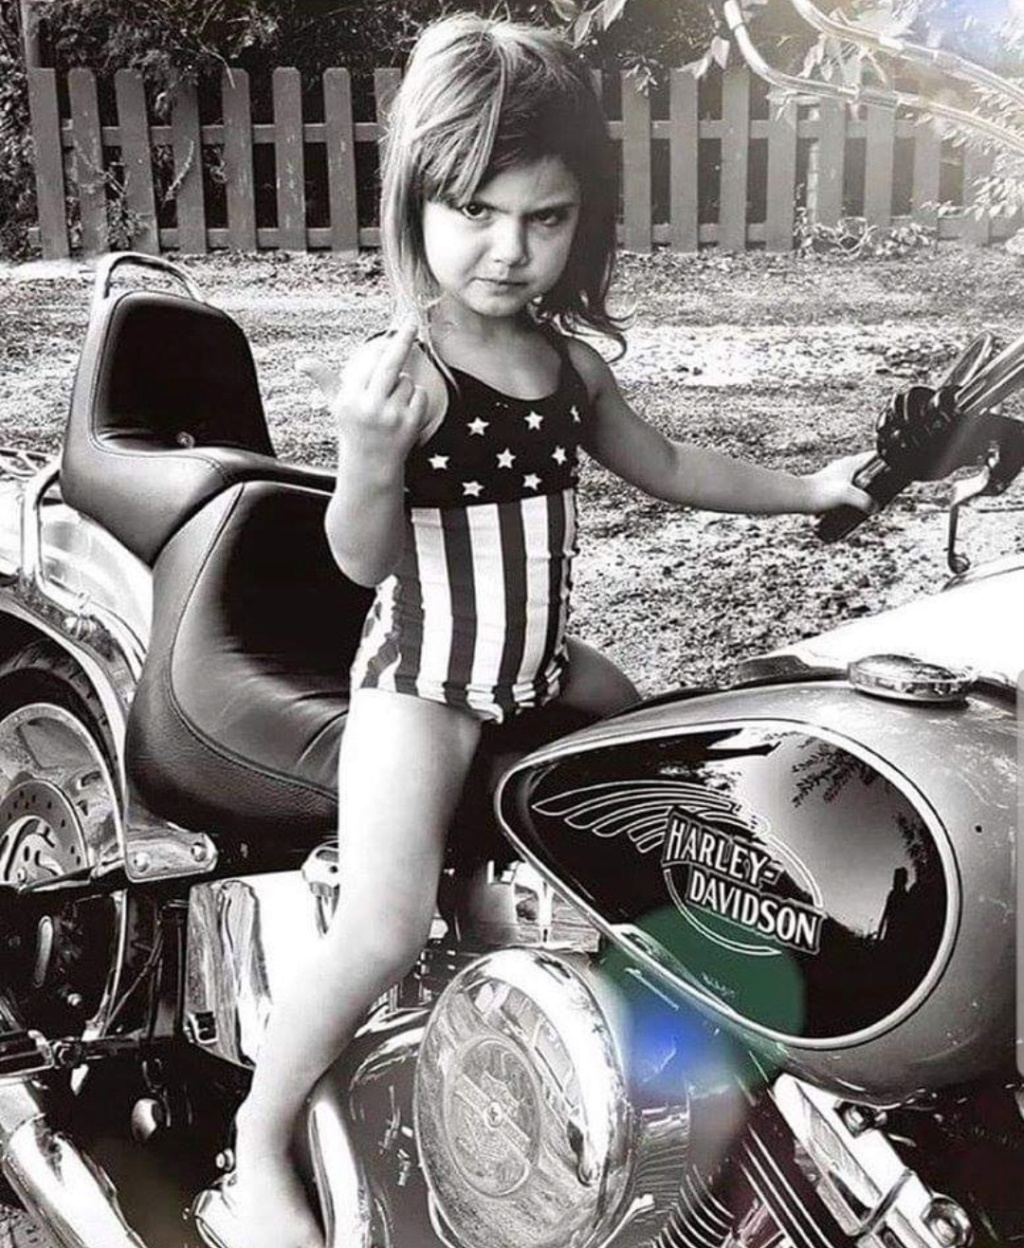 Humour en image du Forum Passion-Harley  ... - Page 29 Img_2044